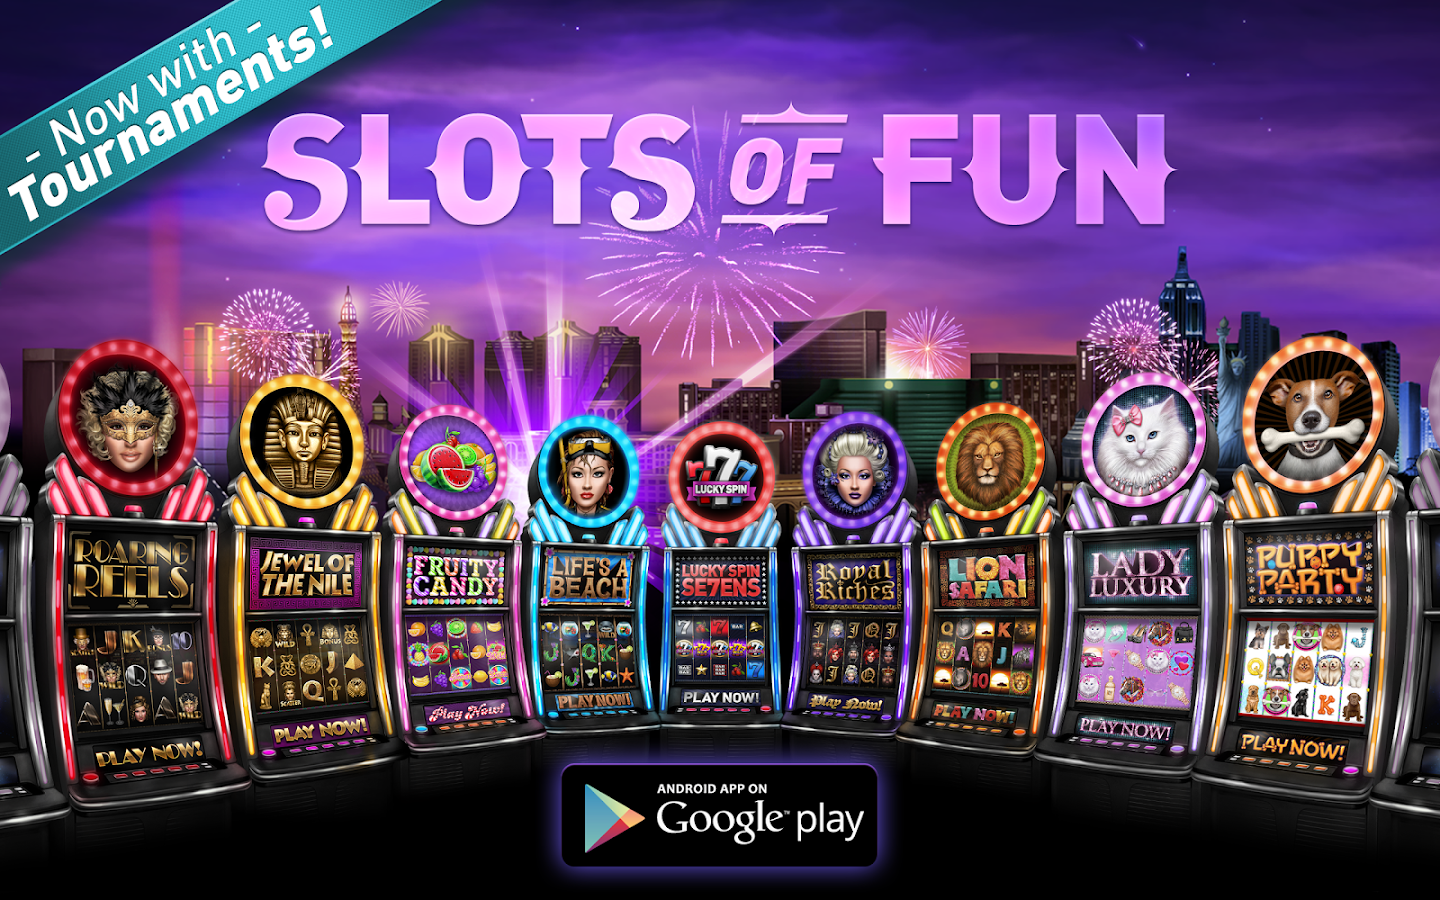 free poker slots games for fun